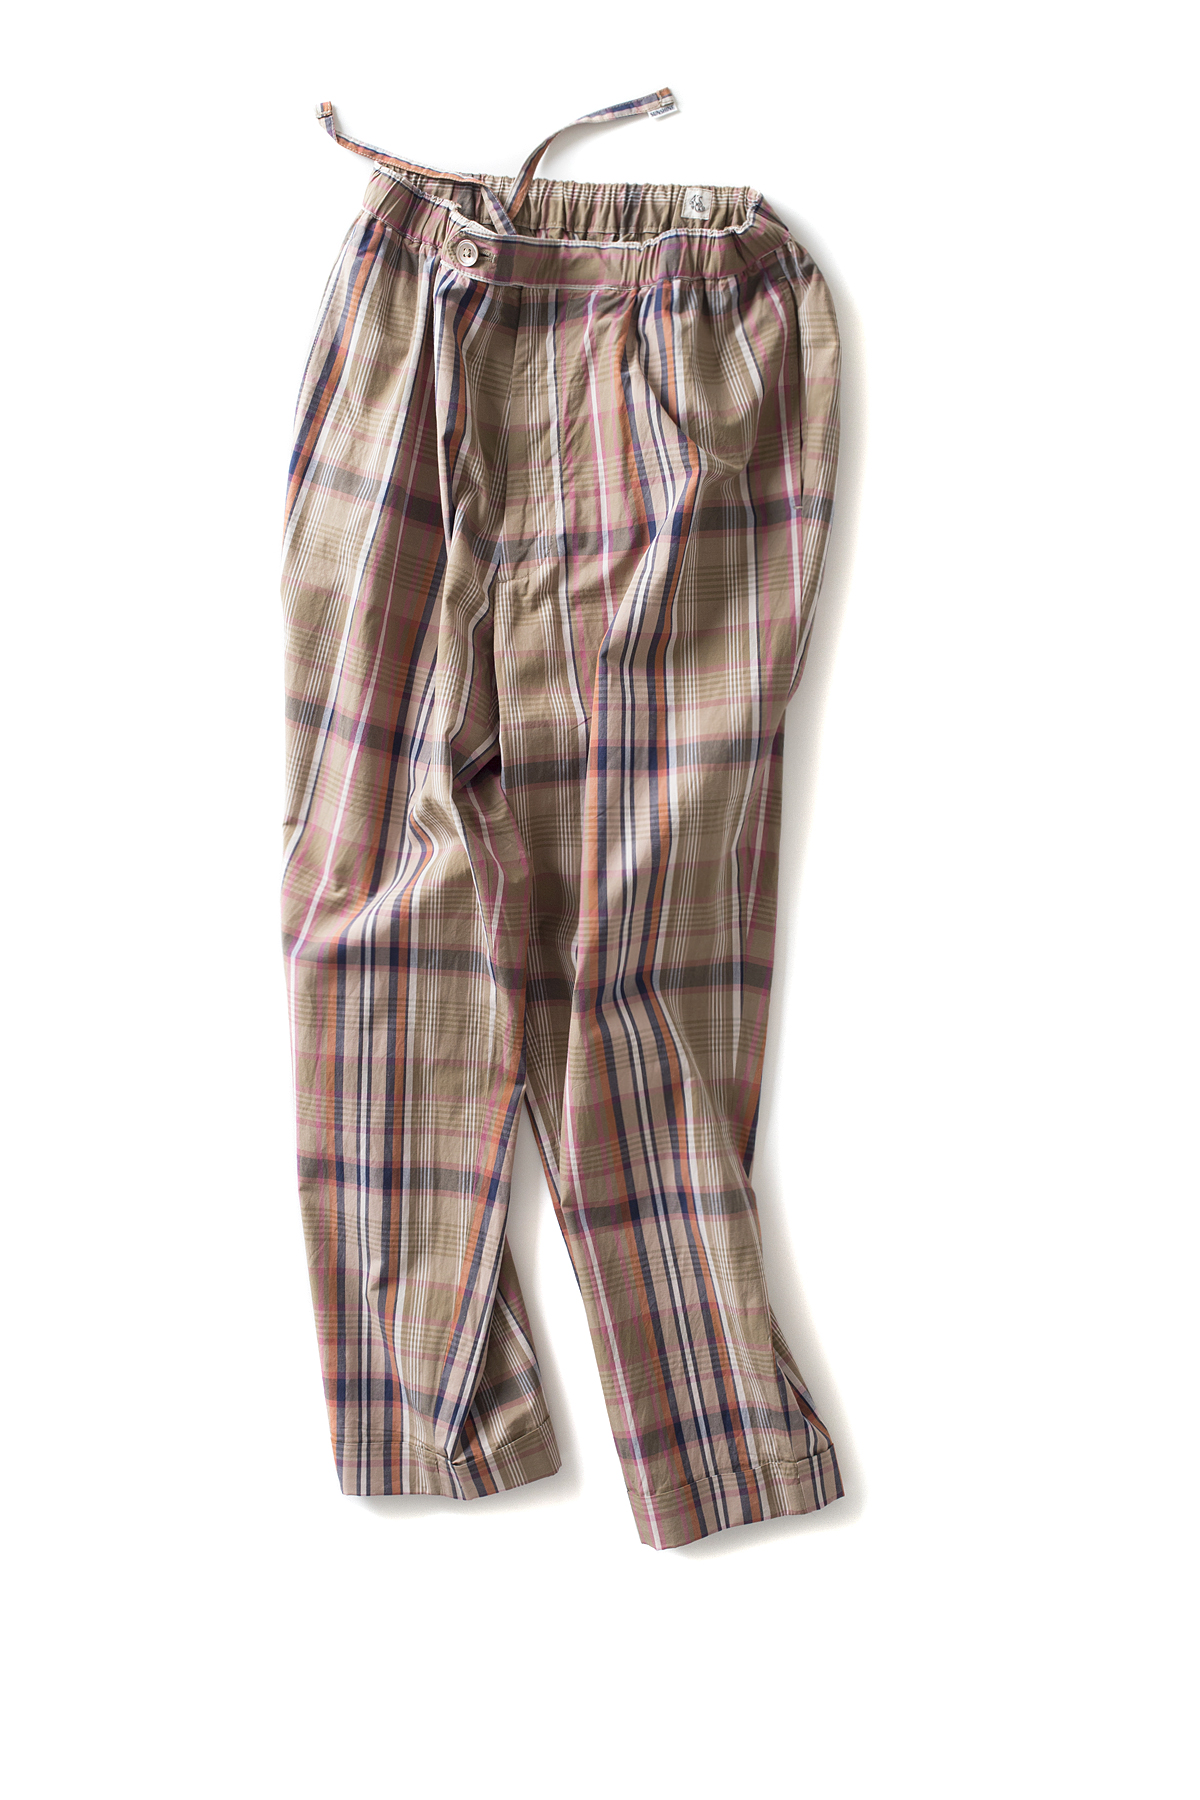 Kaptain Sunshine : Traveller Trousers (Multicolored Check)